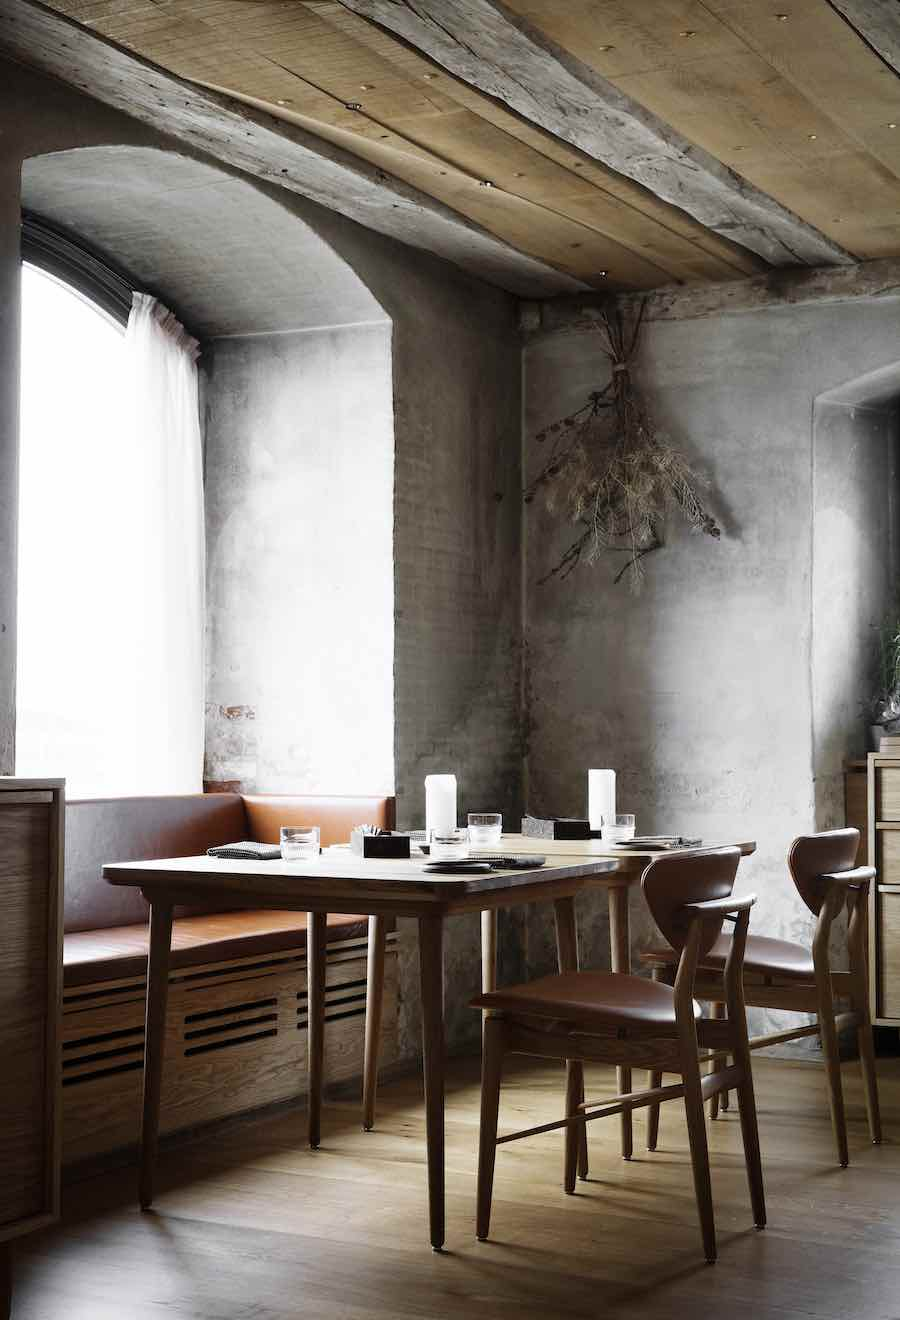 BARR restaurant - Photo: courtesy of Snøhetta